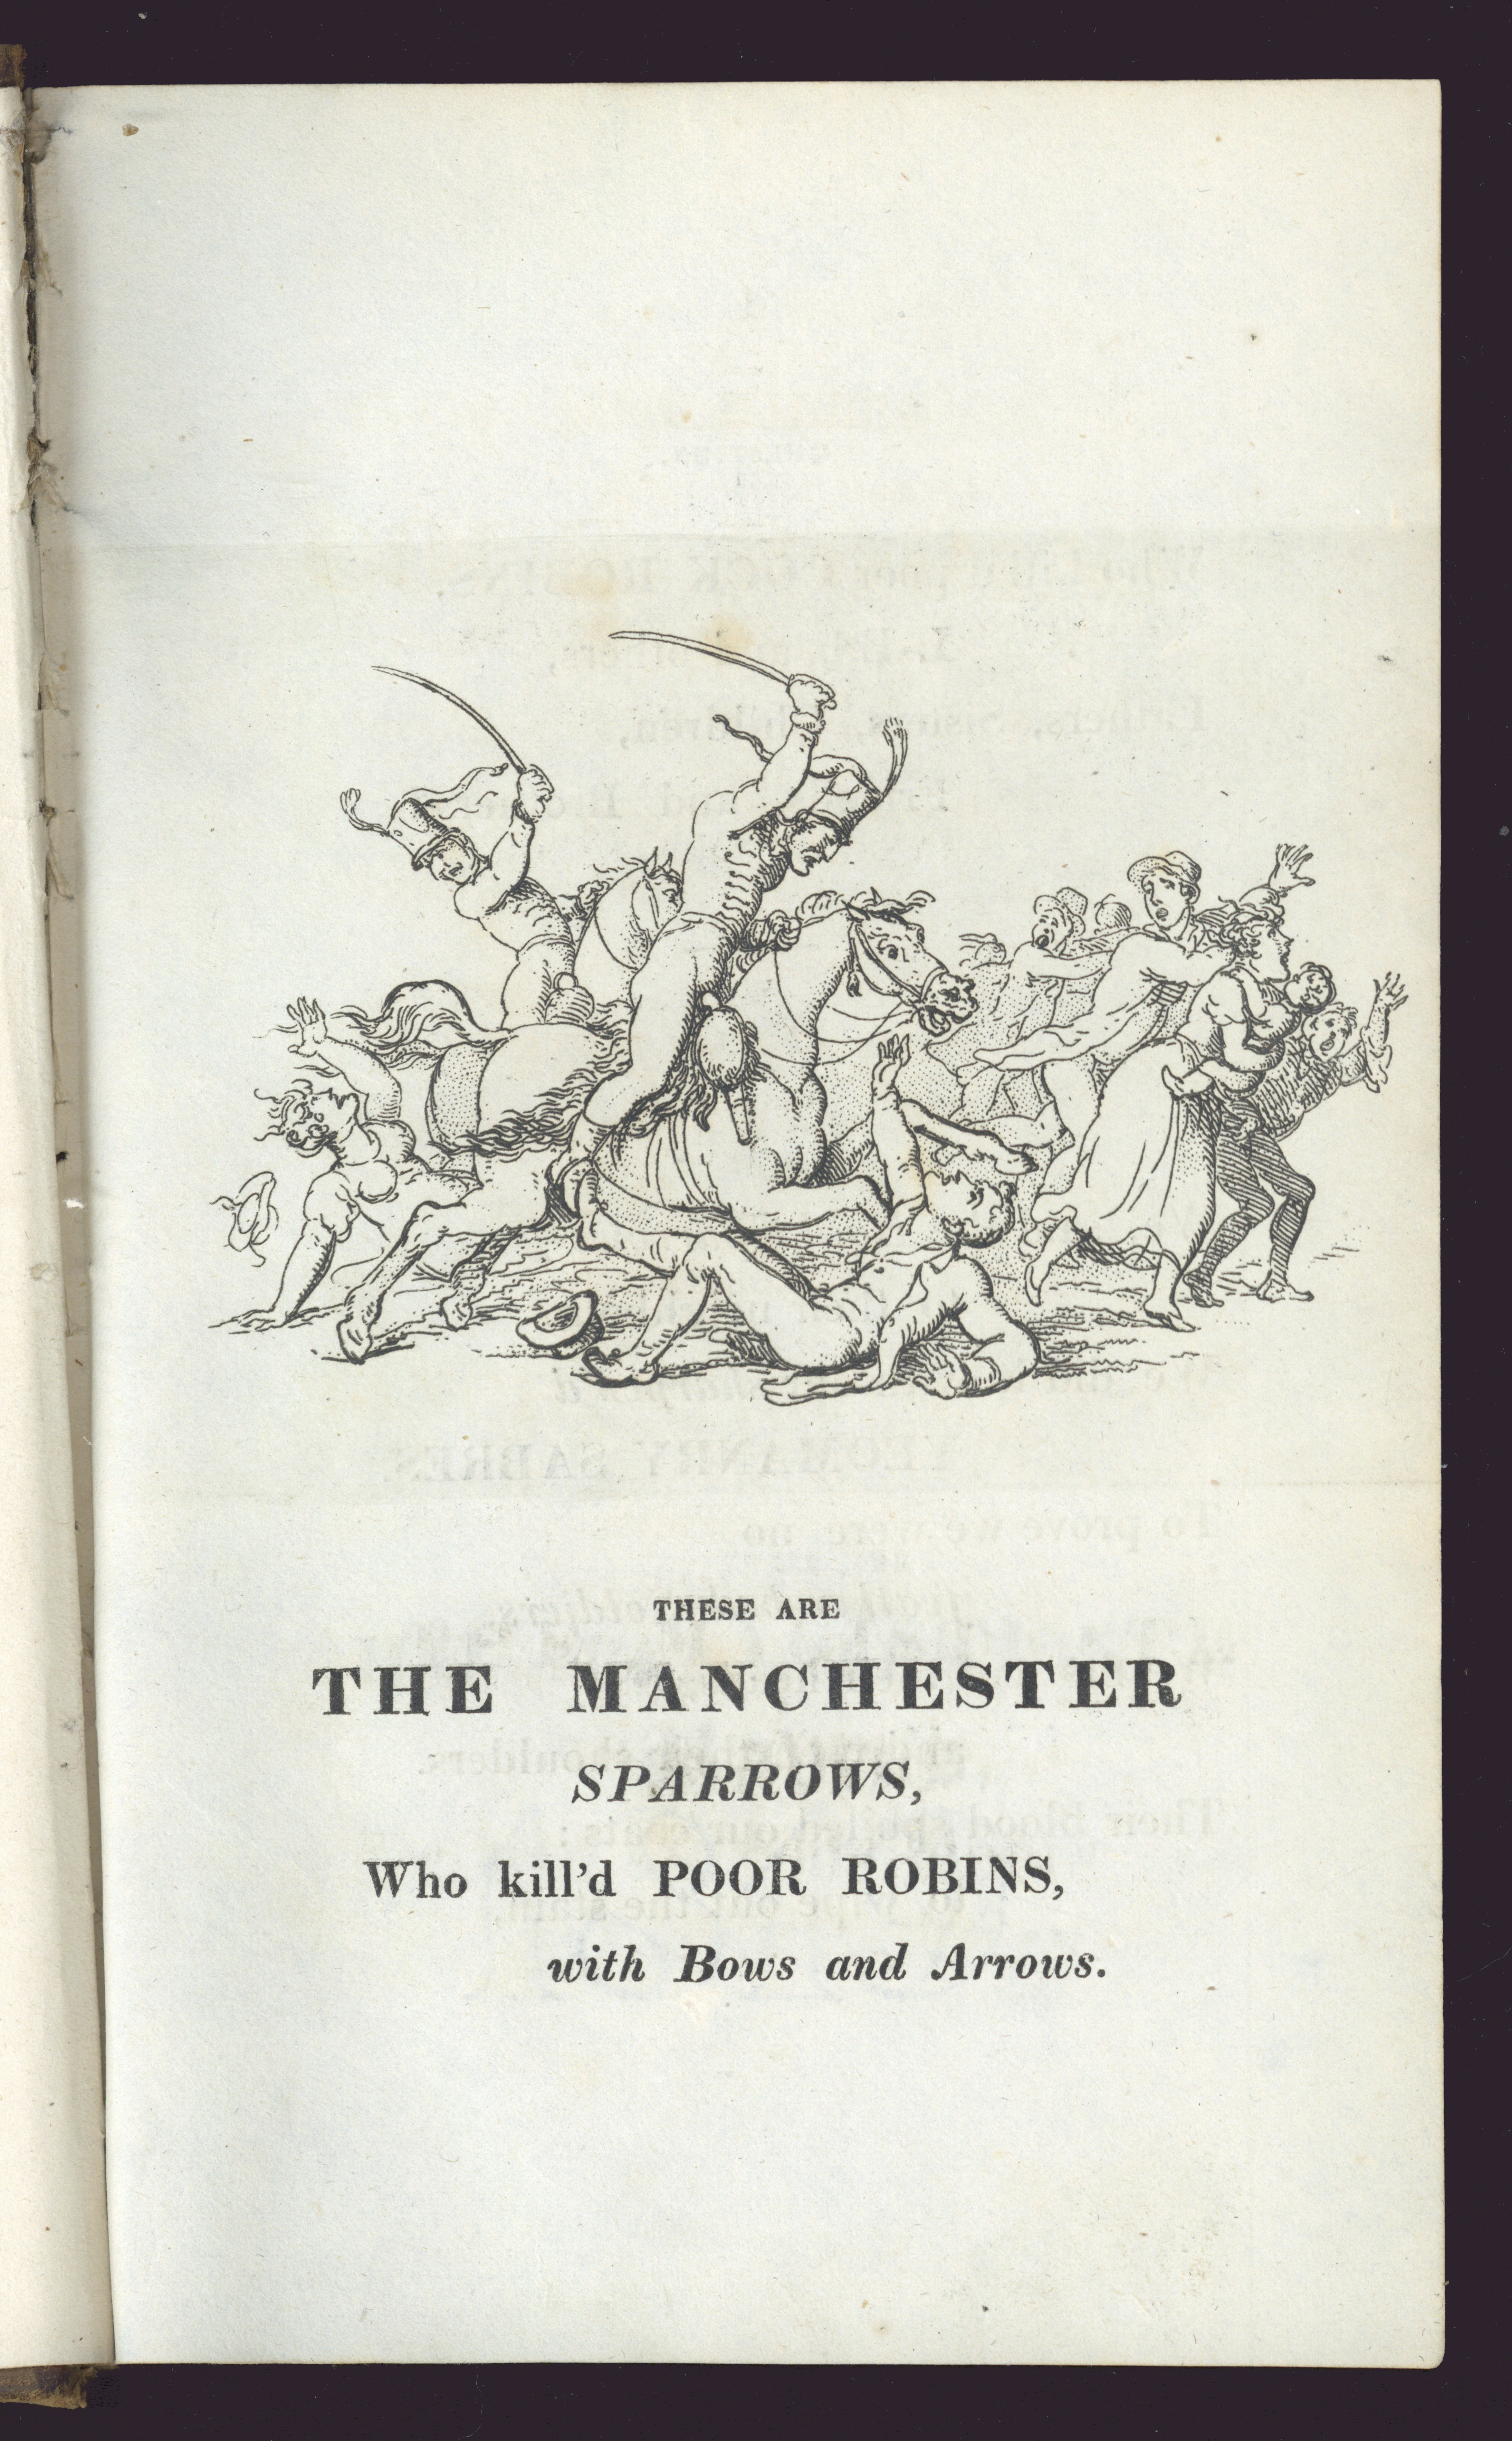 Page from Image: 'These are the Manchester Sparrows, Who kill'd Poor Robins, with Bows and Arrows'. From: Who Killed Cock Robin? A Satirical Tragedy, or Hieroglyphic Prophecy on the Manchester Blot!!! (London: John Cahuac, 1819) Cowen Tracts v.136, n.1